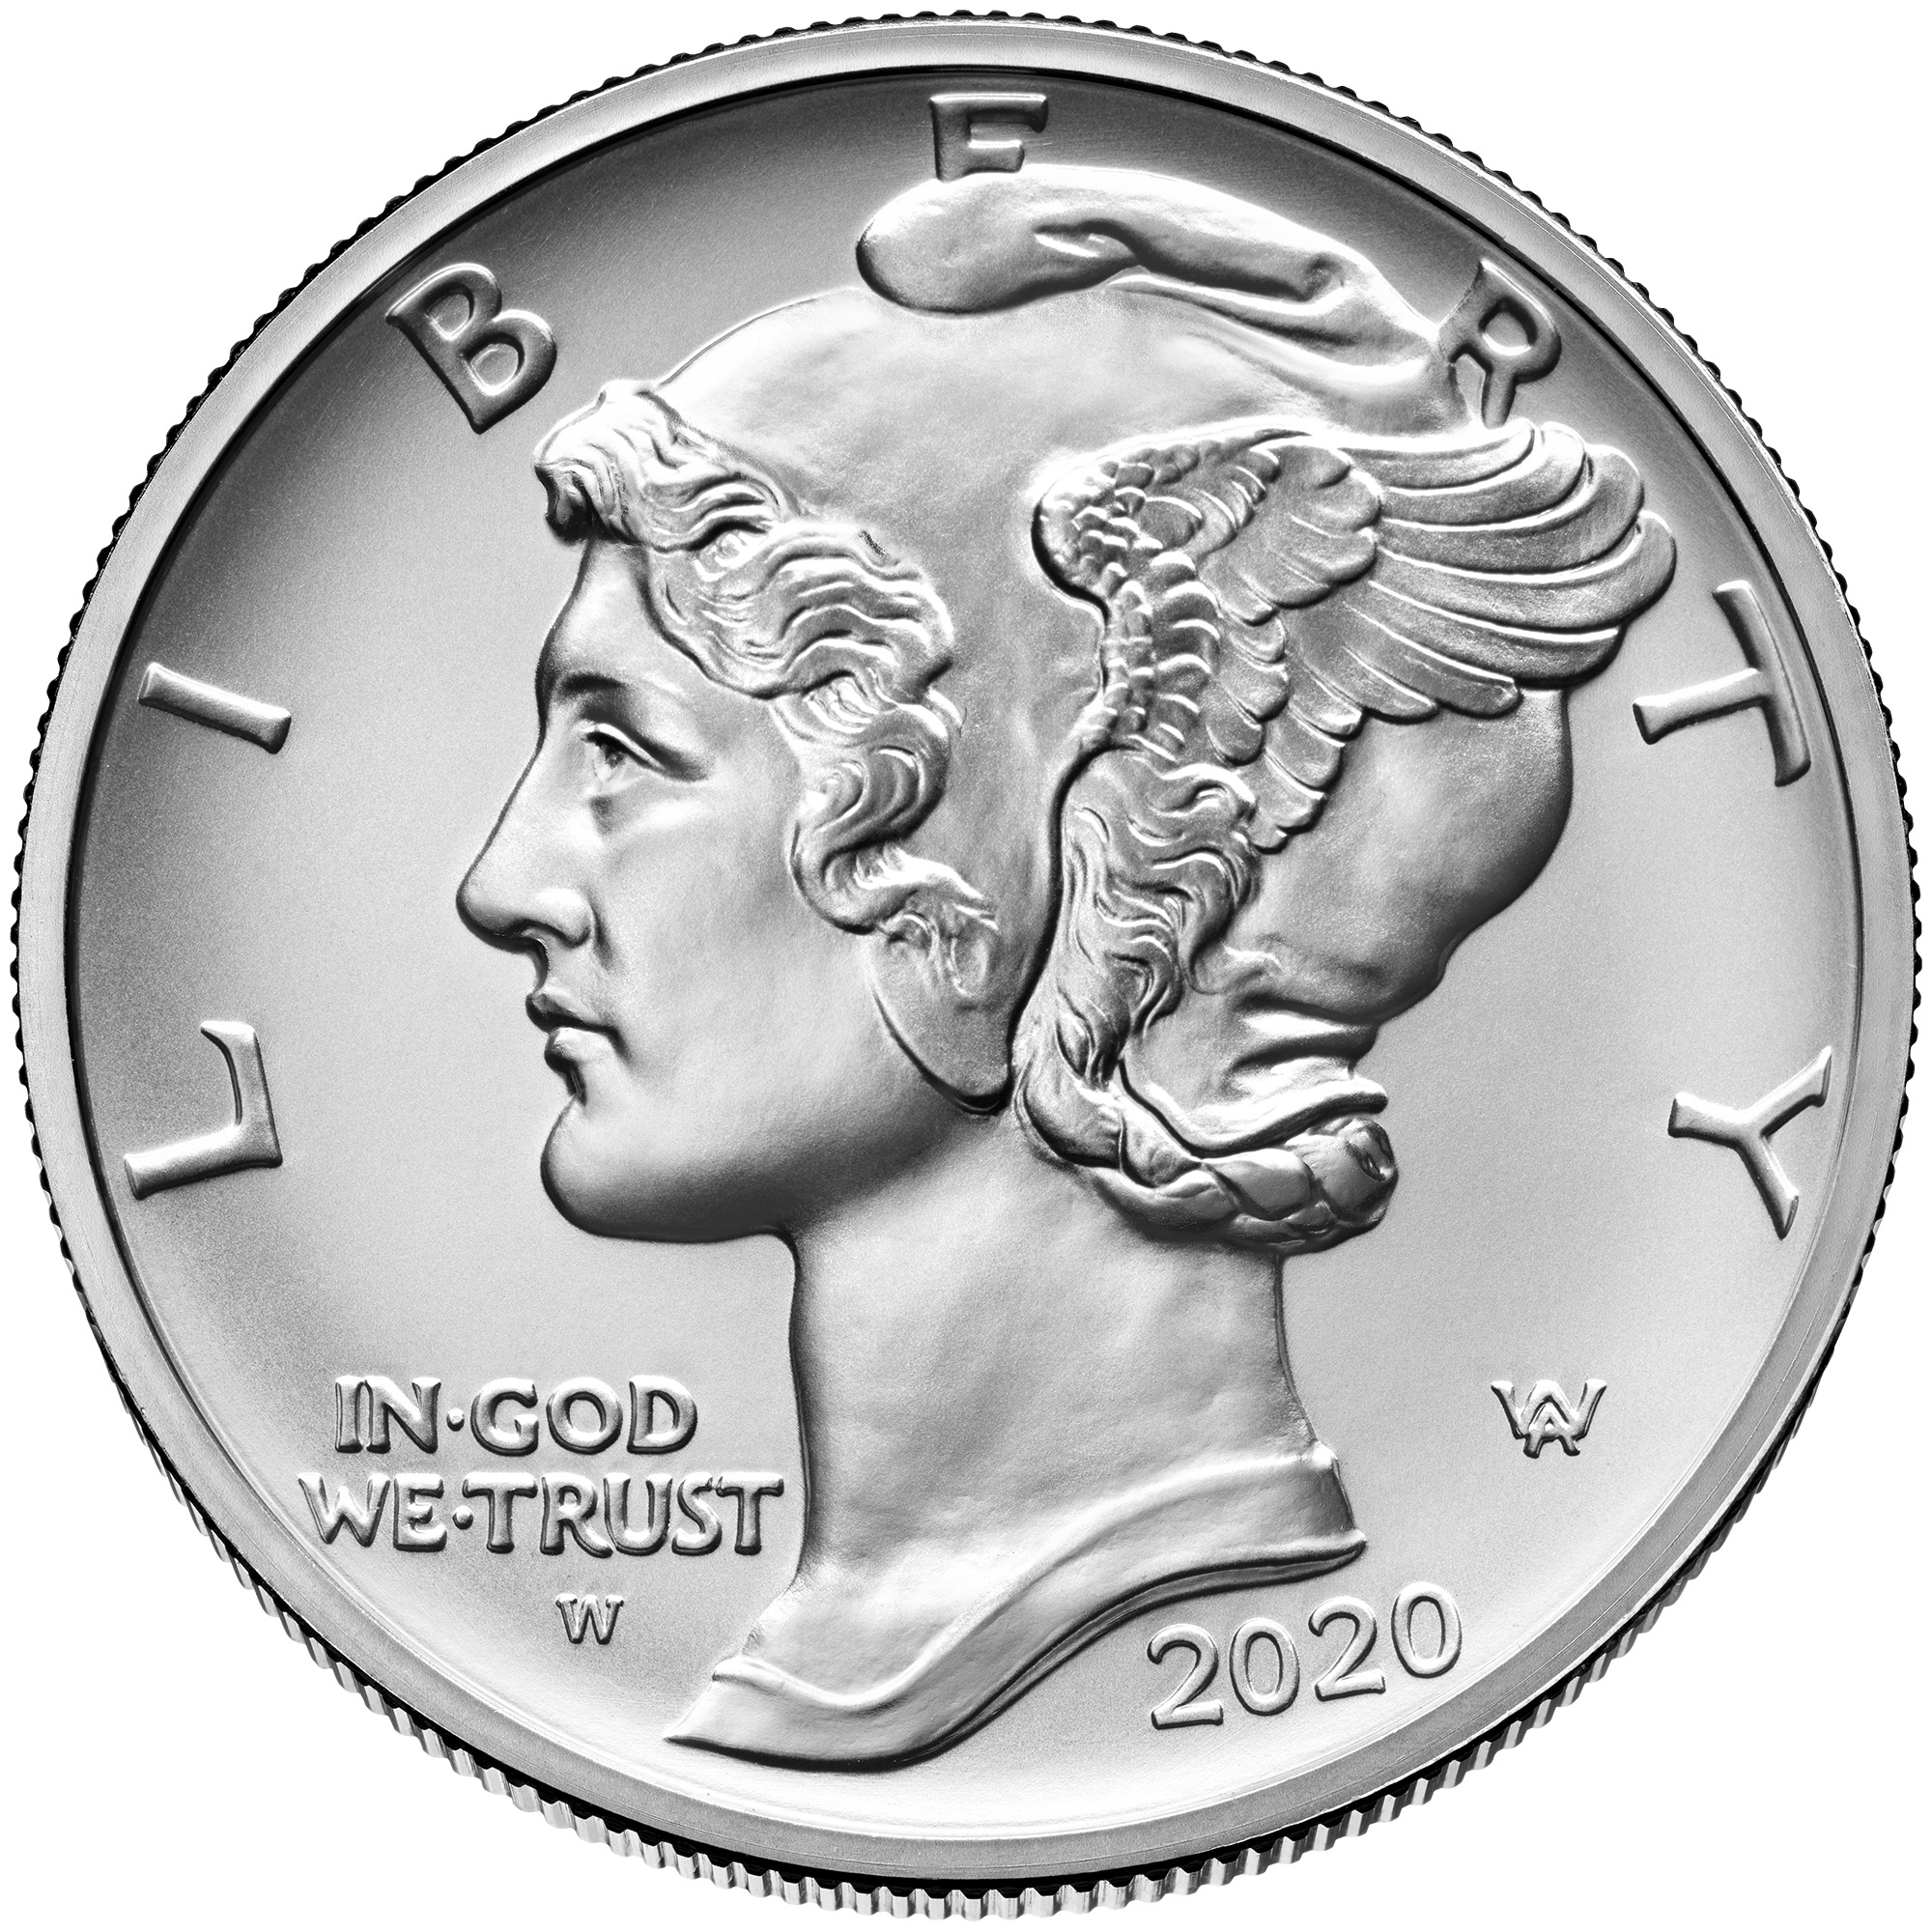 2020 American Eagle Palladium 1-Ounce Obverse (Image Courtesy of the United States Mint)